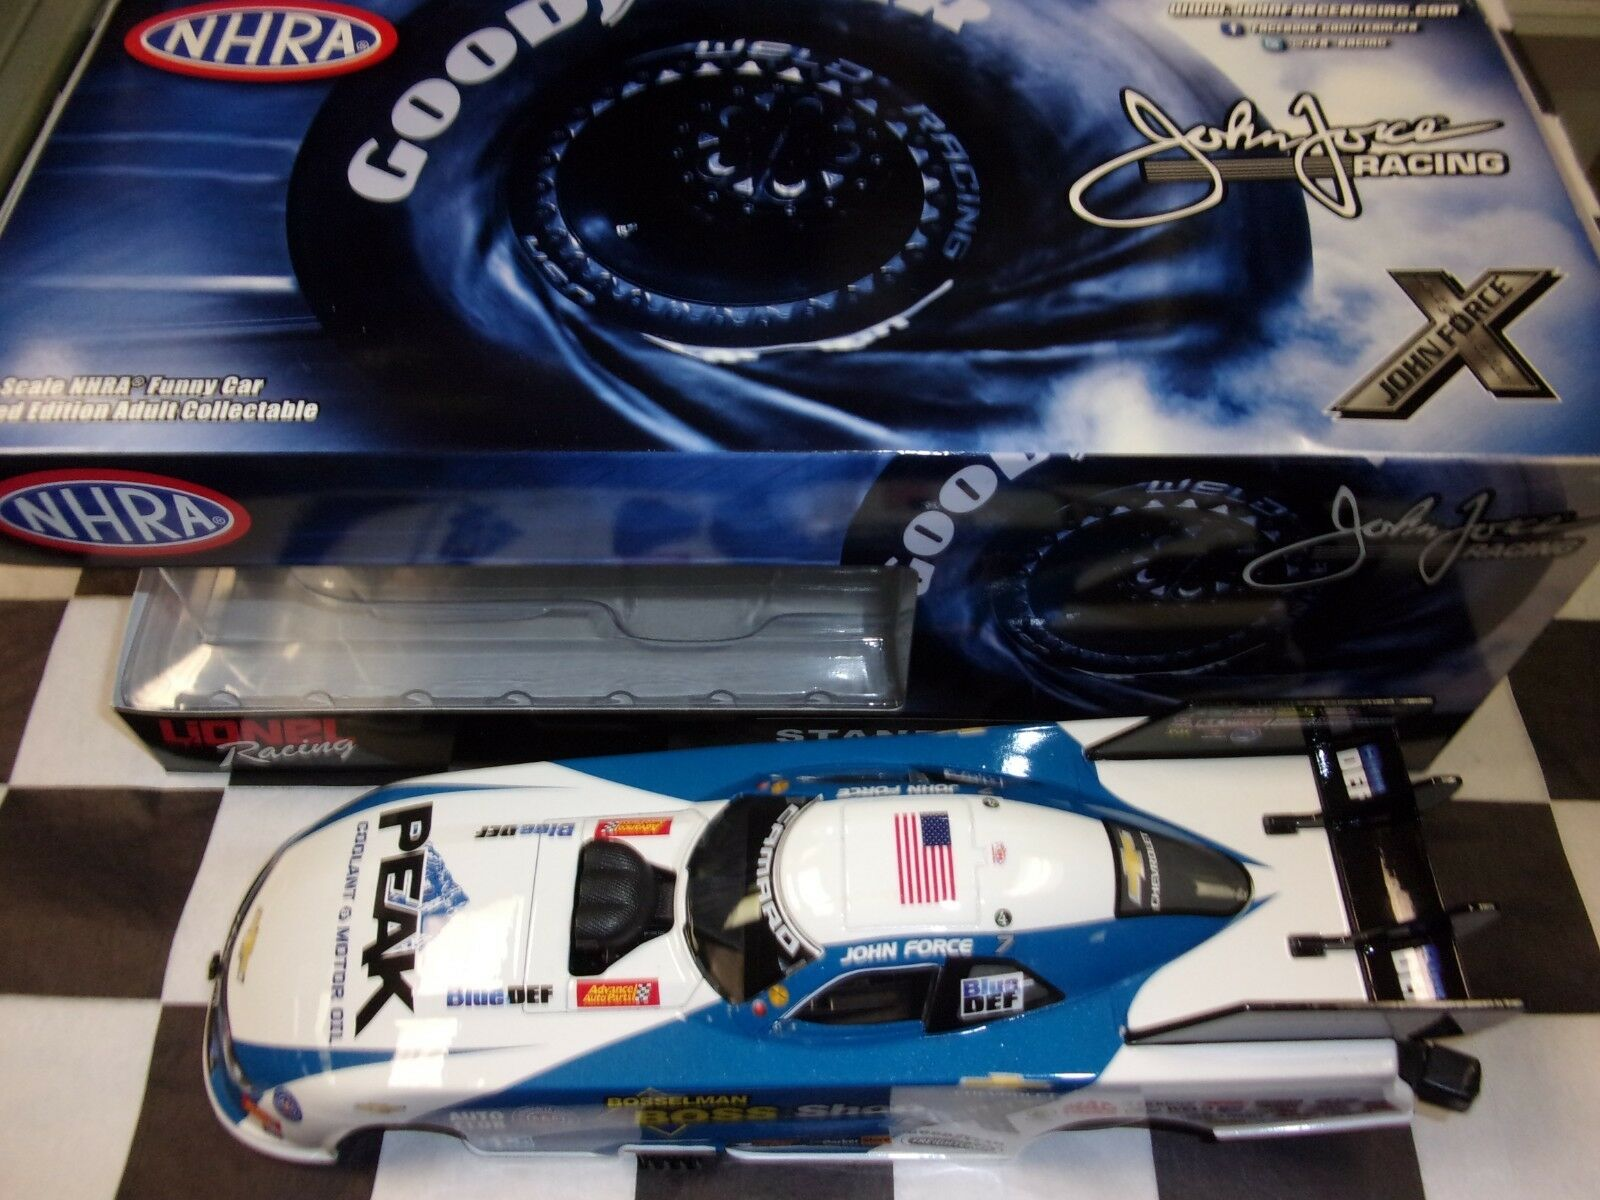 John Force Boss Shops 2018 Camaro Funny Car 1 24 scale car Action NHRA NIB